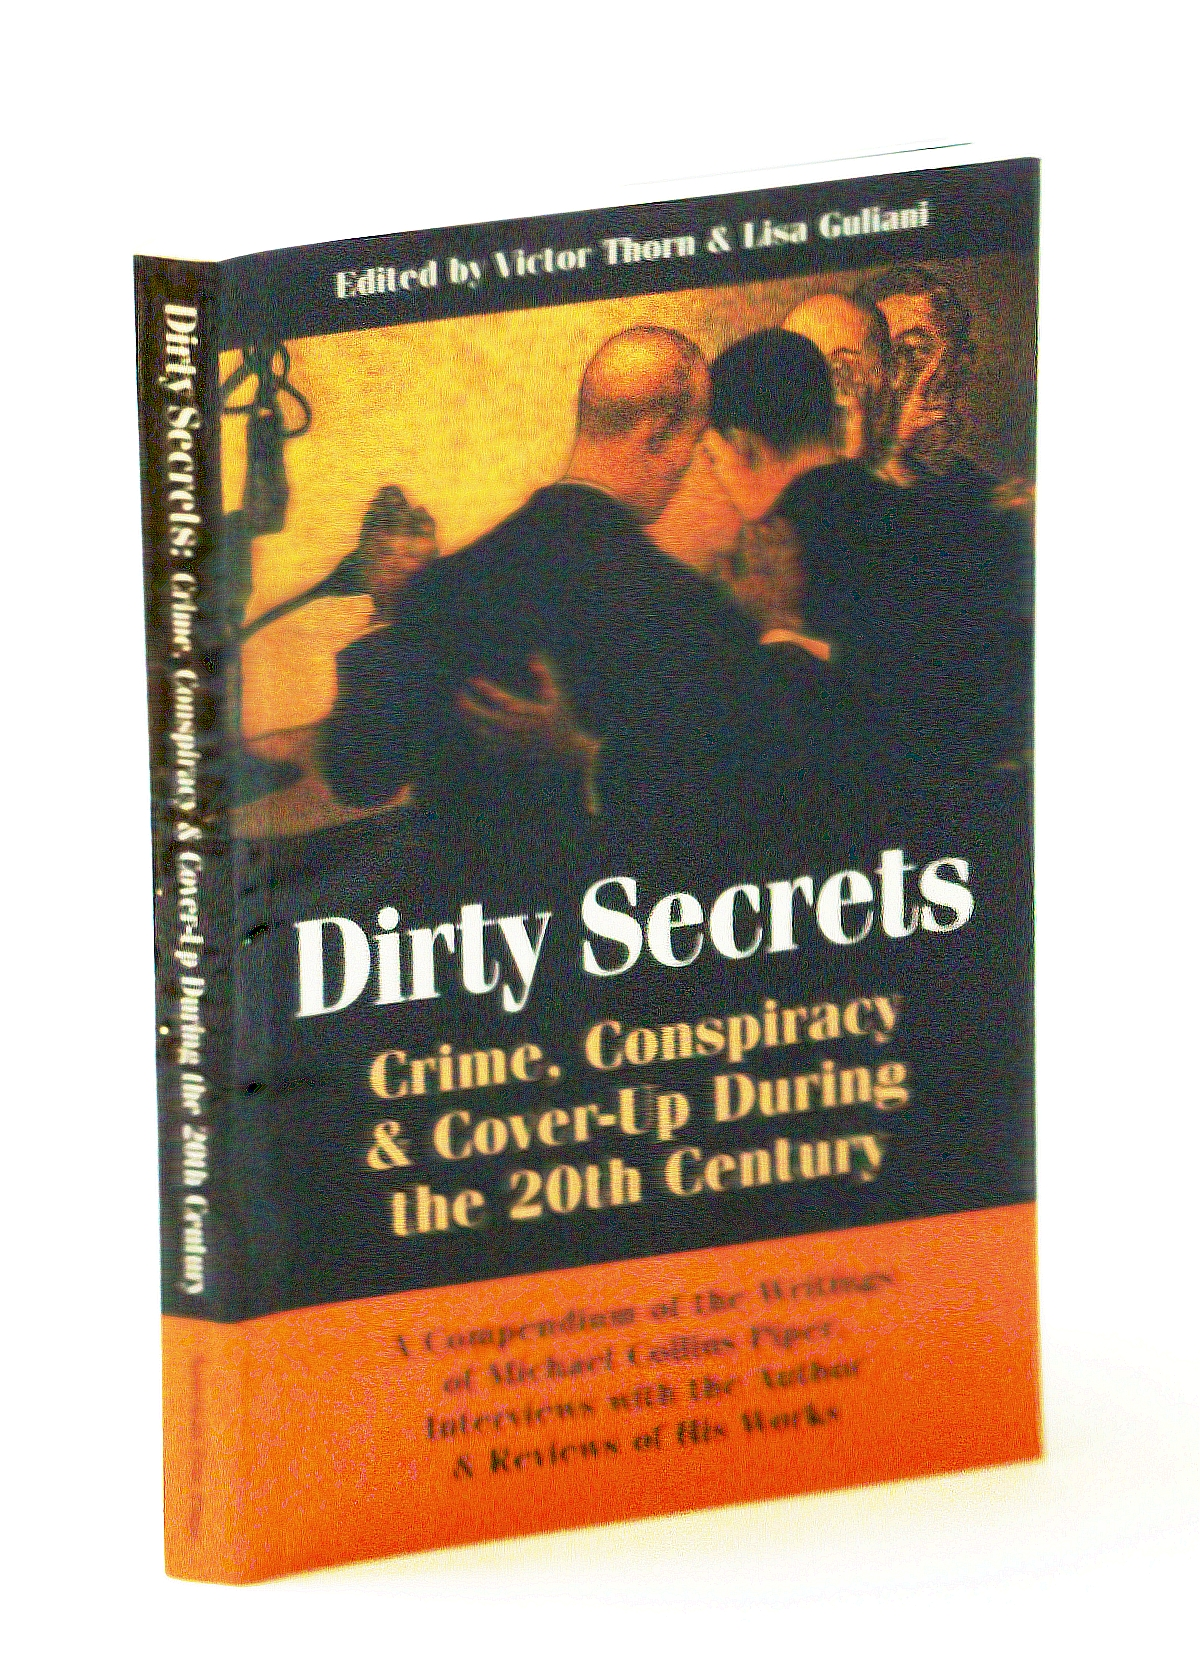 Image for Dirty Secrets: Crime, Conspiracy & Cover-Up During the 20th Century